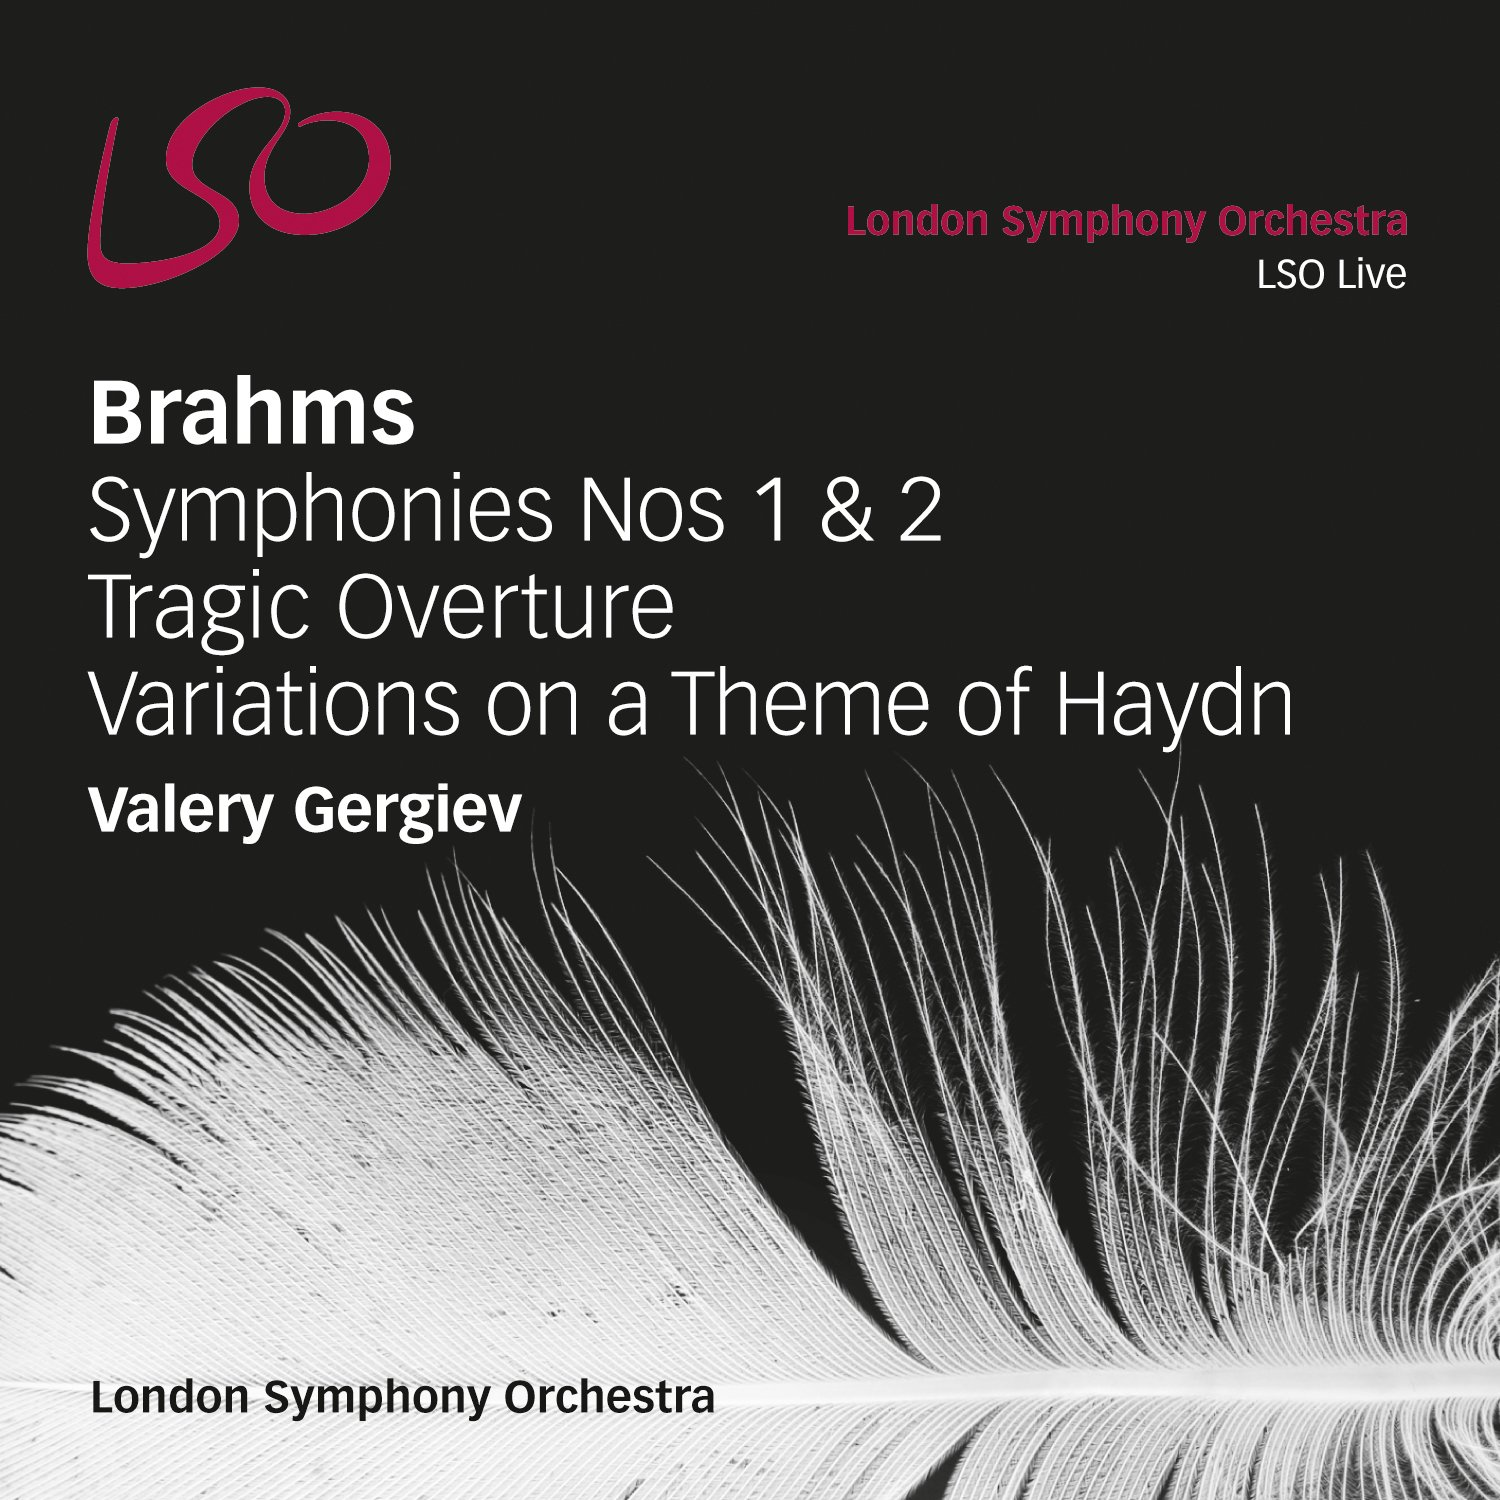 Brahms: Symphonies Nos.1 & 2, Tragic Overture, Haydn Variations by LSO LIVE